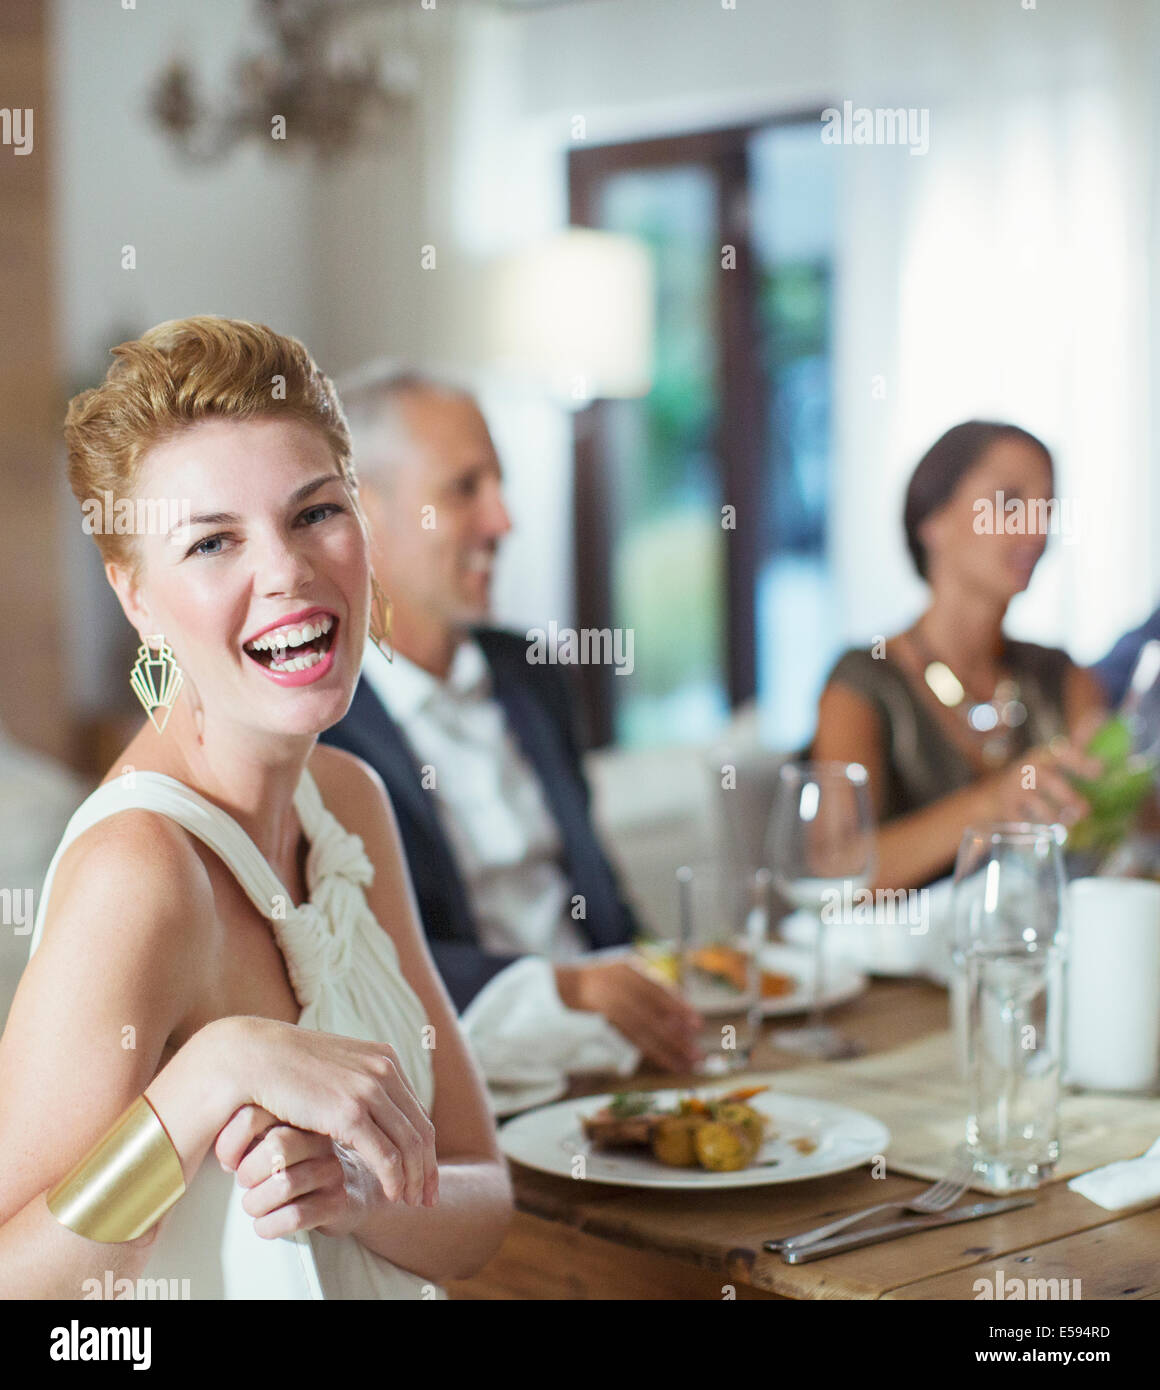 Woman laughing at dinner party - Stock Image